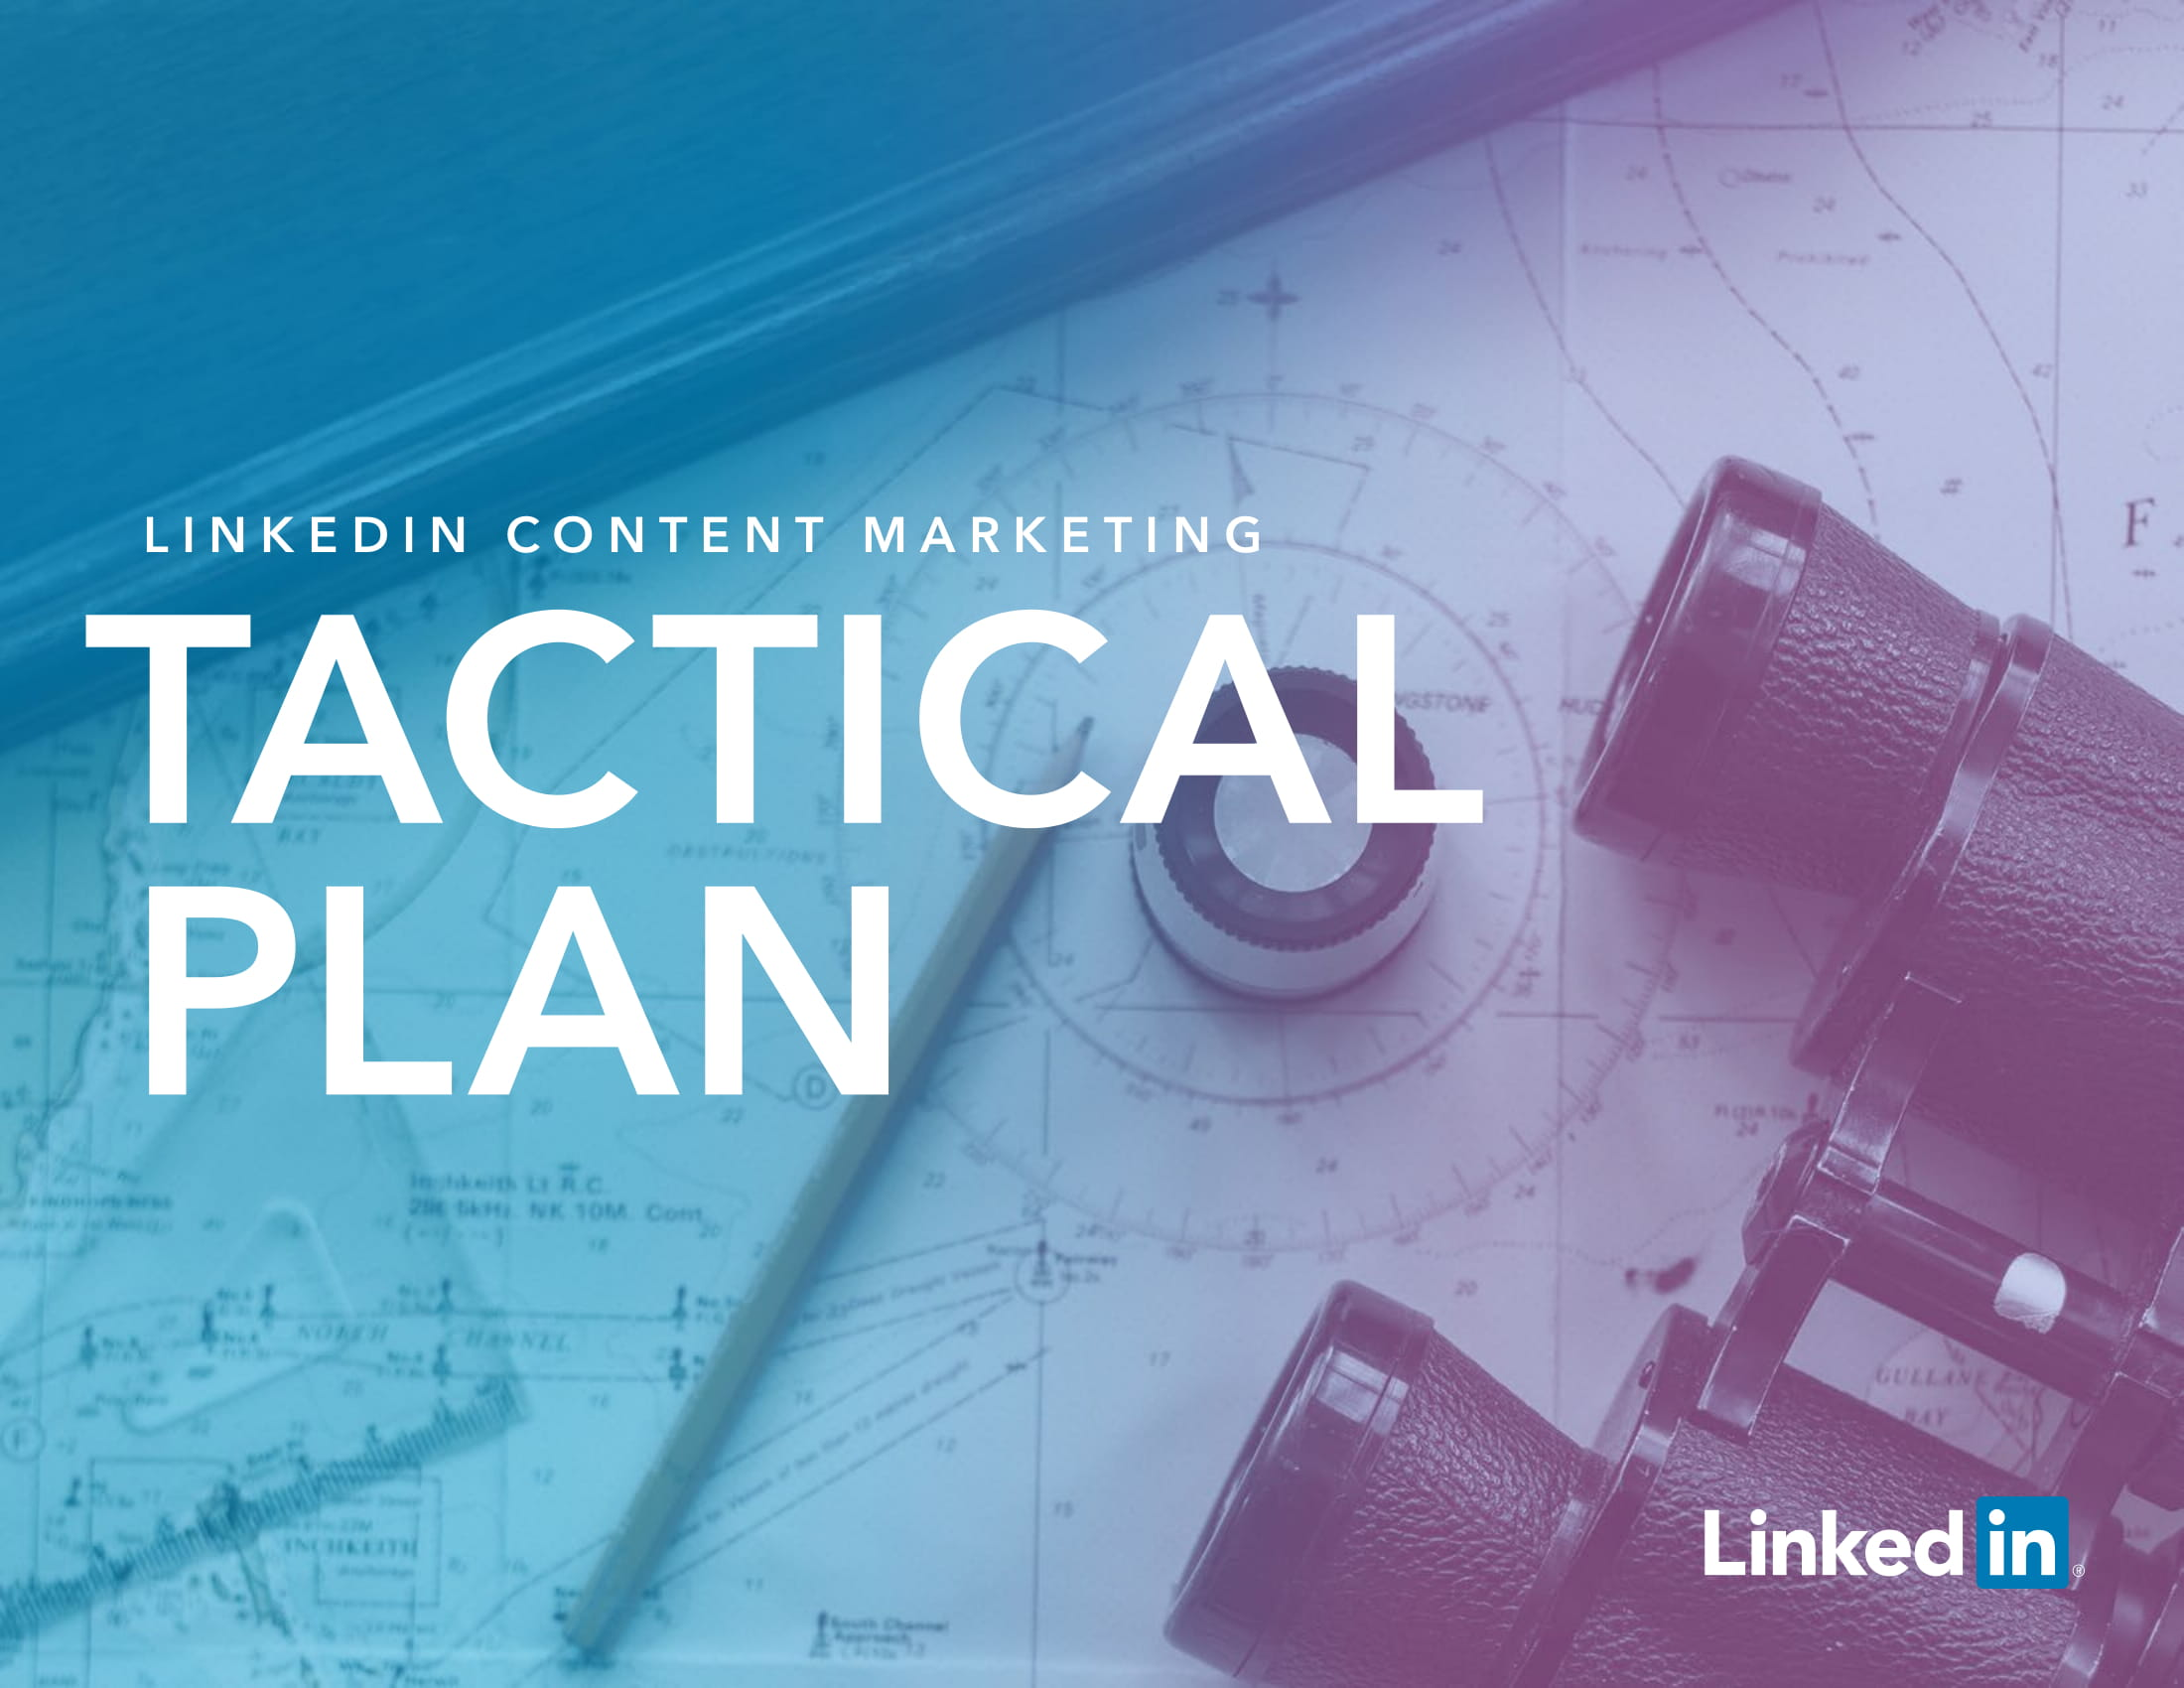 linkedin content marketing tactical plan example